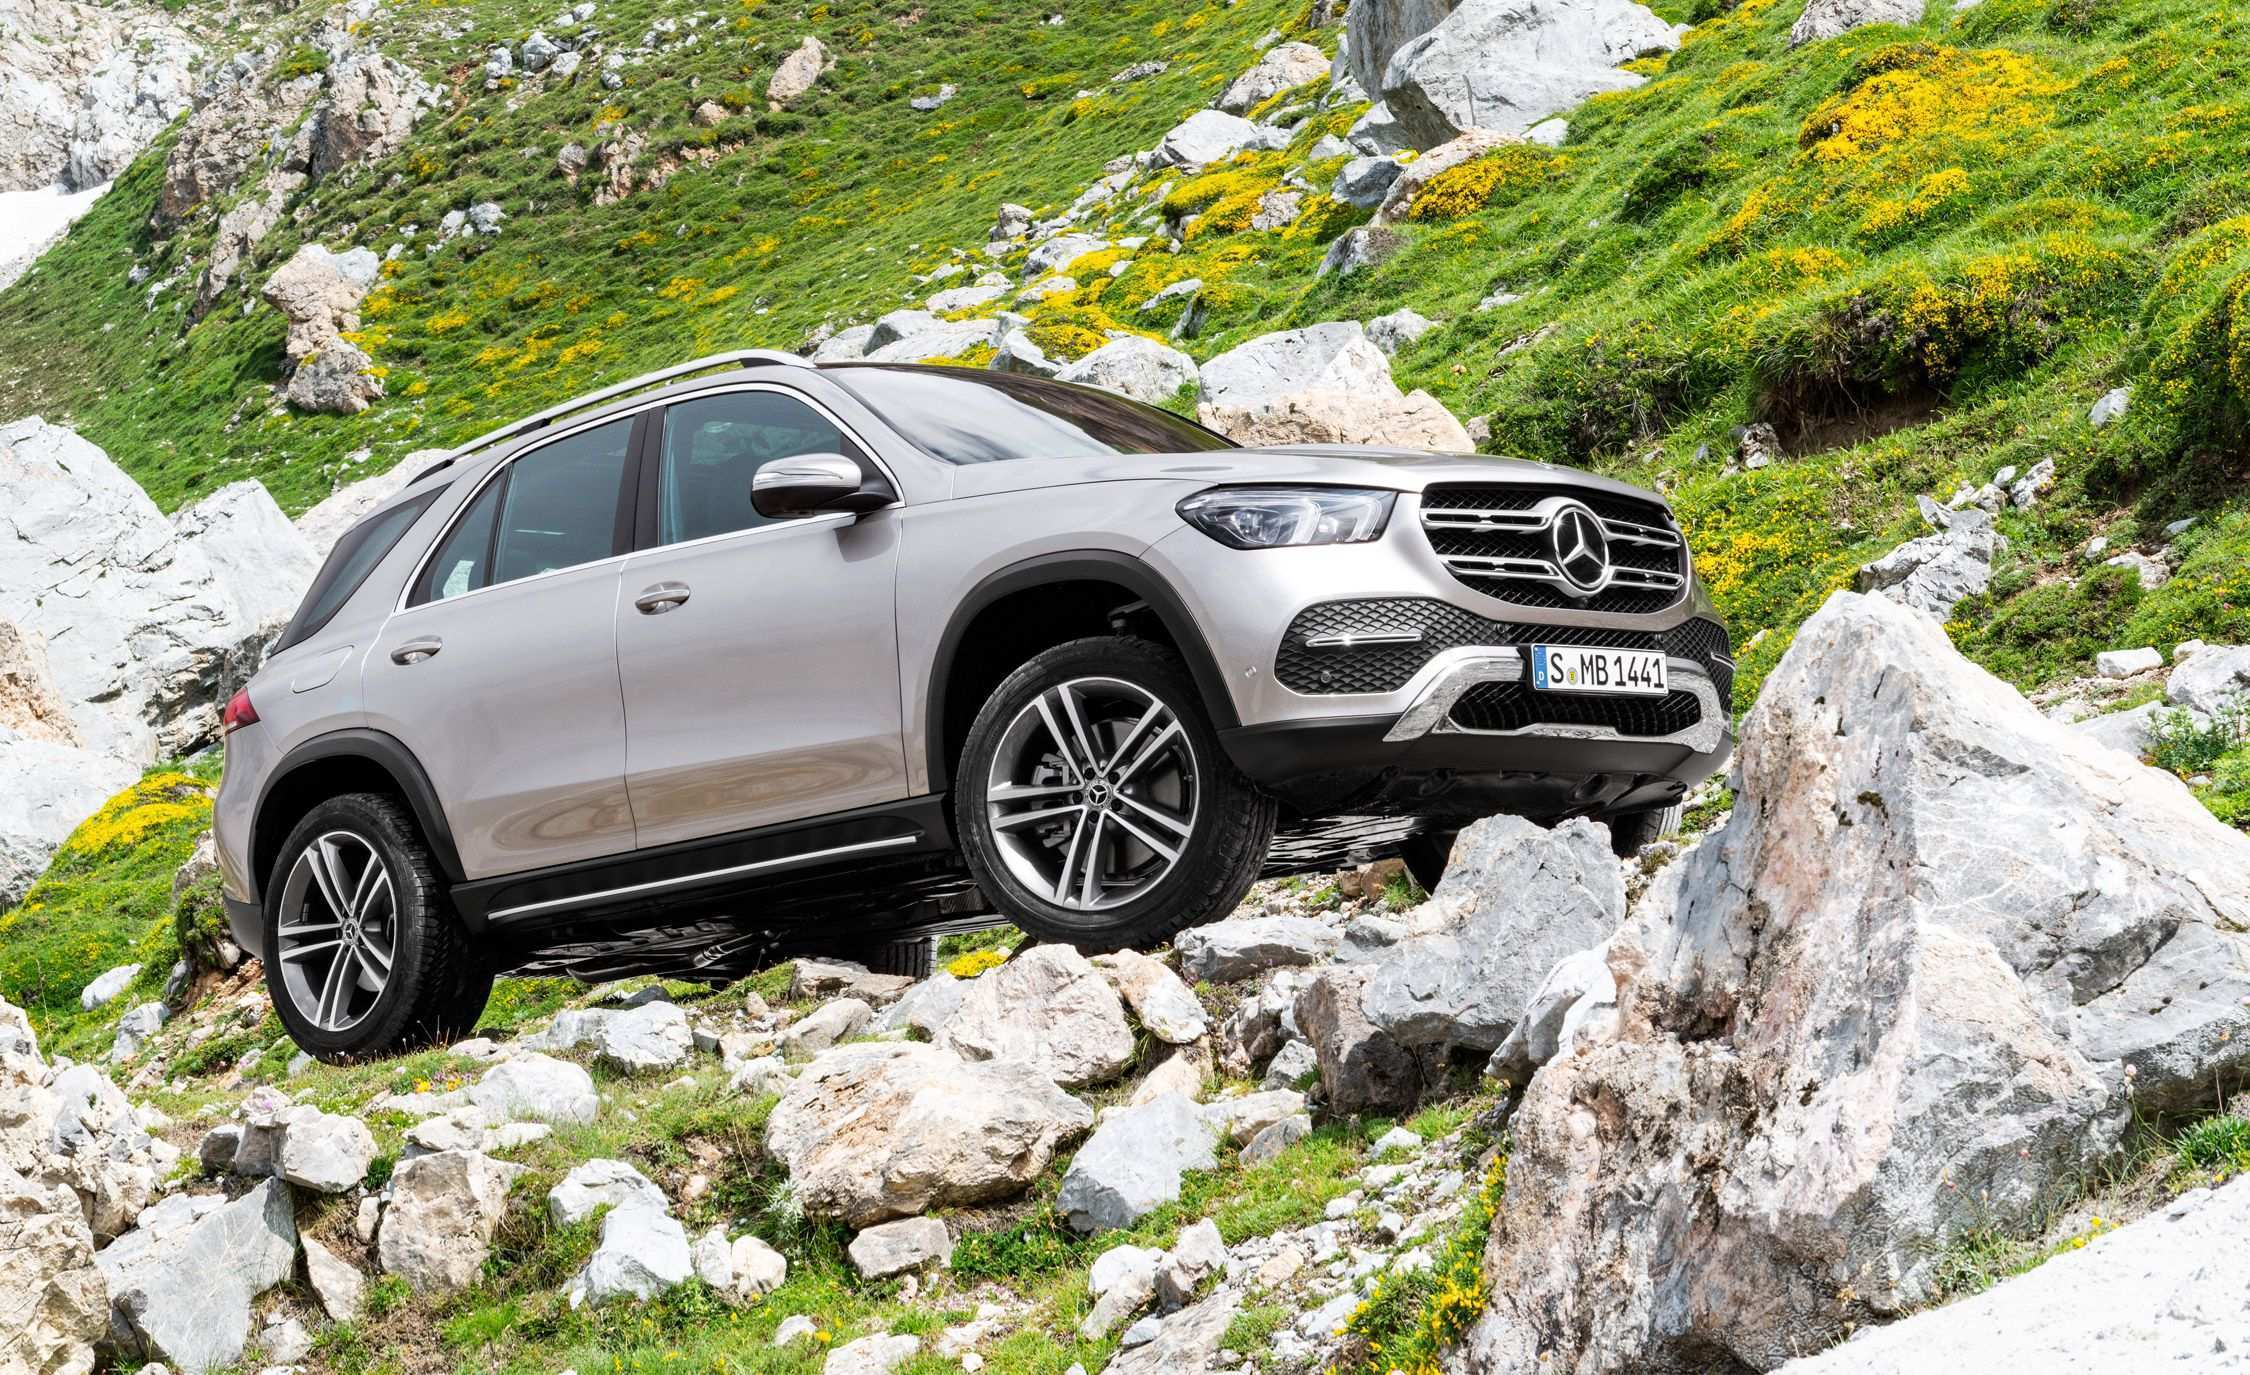 49 All New 2020 Mercedes ML Class 400 Style